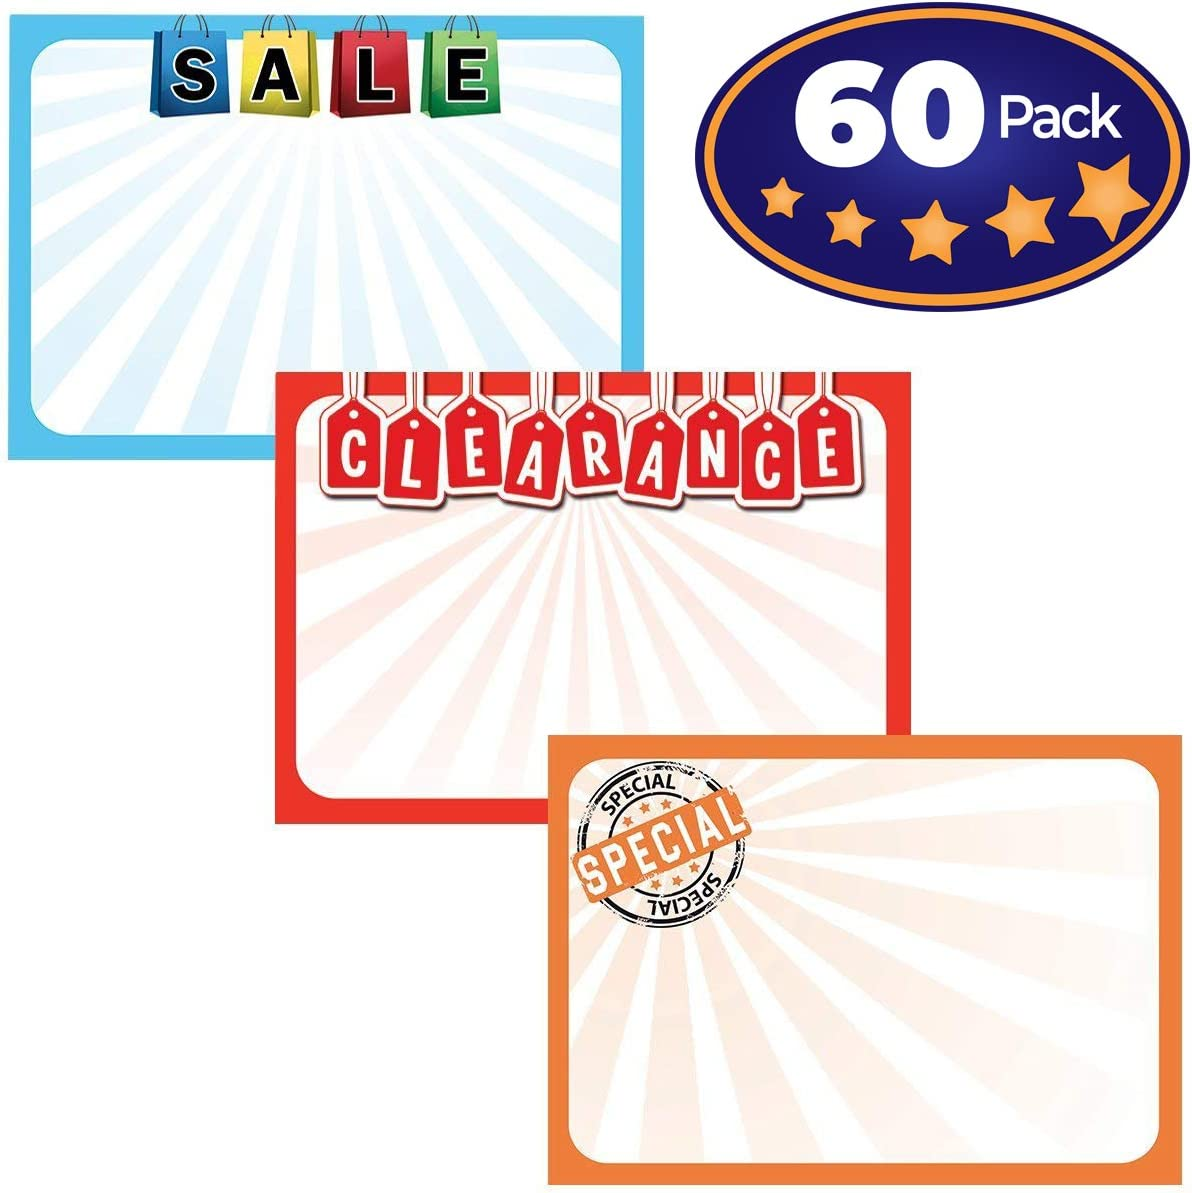 Retail Genius Sale Sign Bulk Variety 60 Pack. Durable 5x7 Price Tags Promote Business At Yard, Estate and Garage Sales. Special Display Card Supplies For Pawn Shops, Flea Markets and Clearance Stores